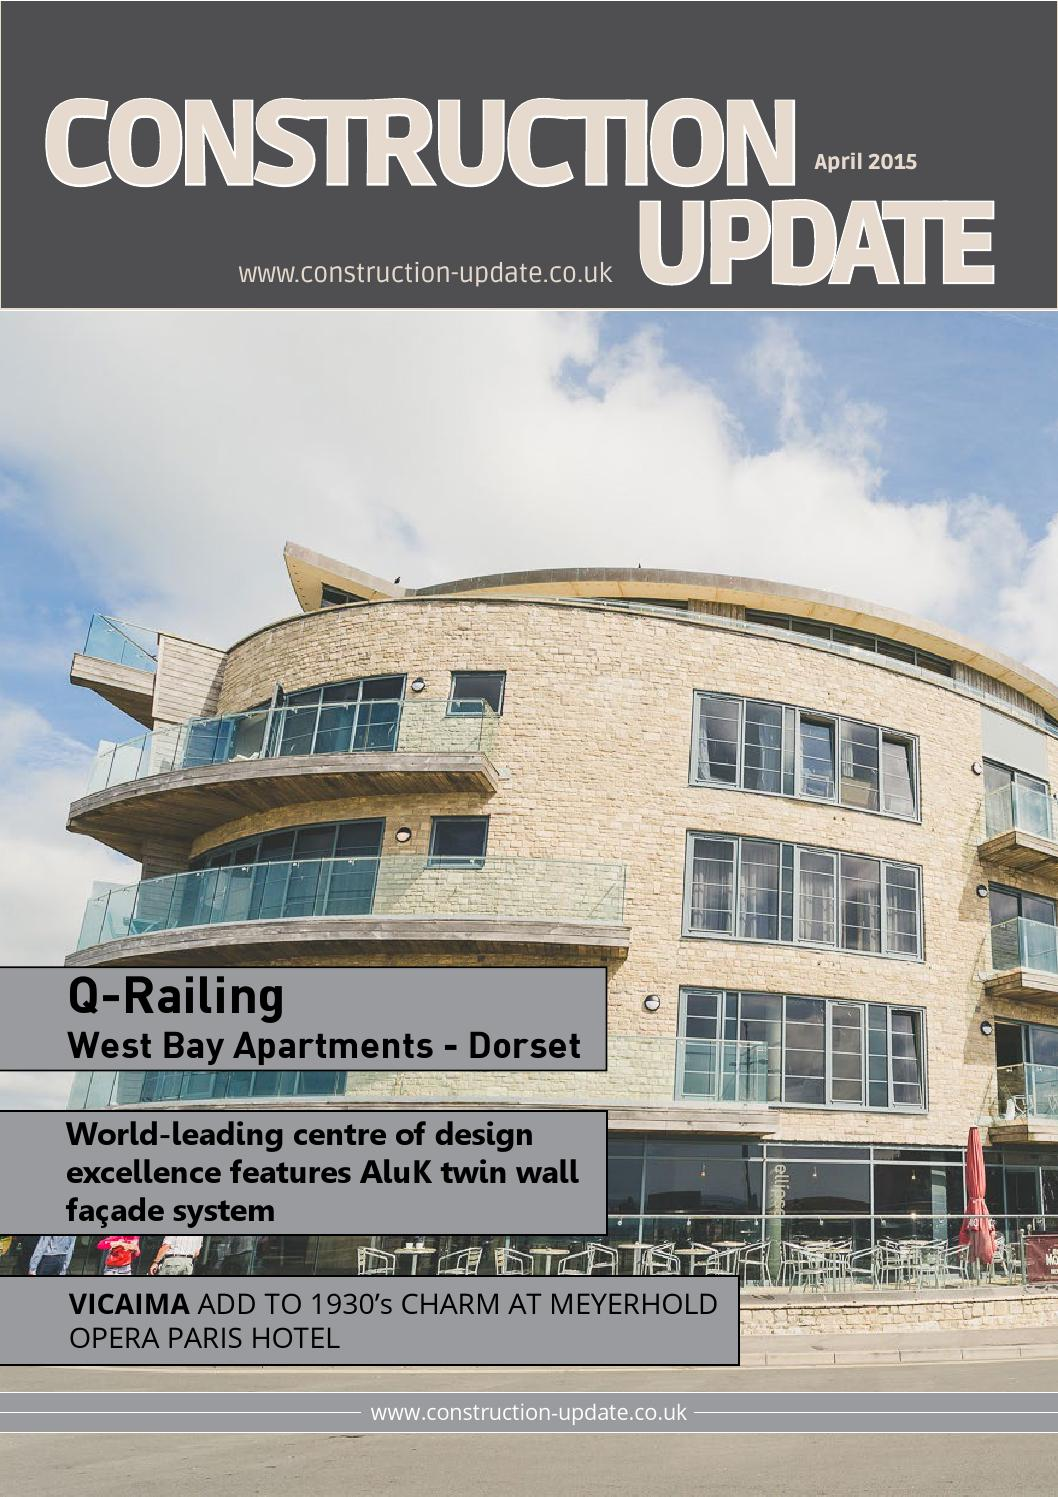 Construction Update - April 2015 free download